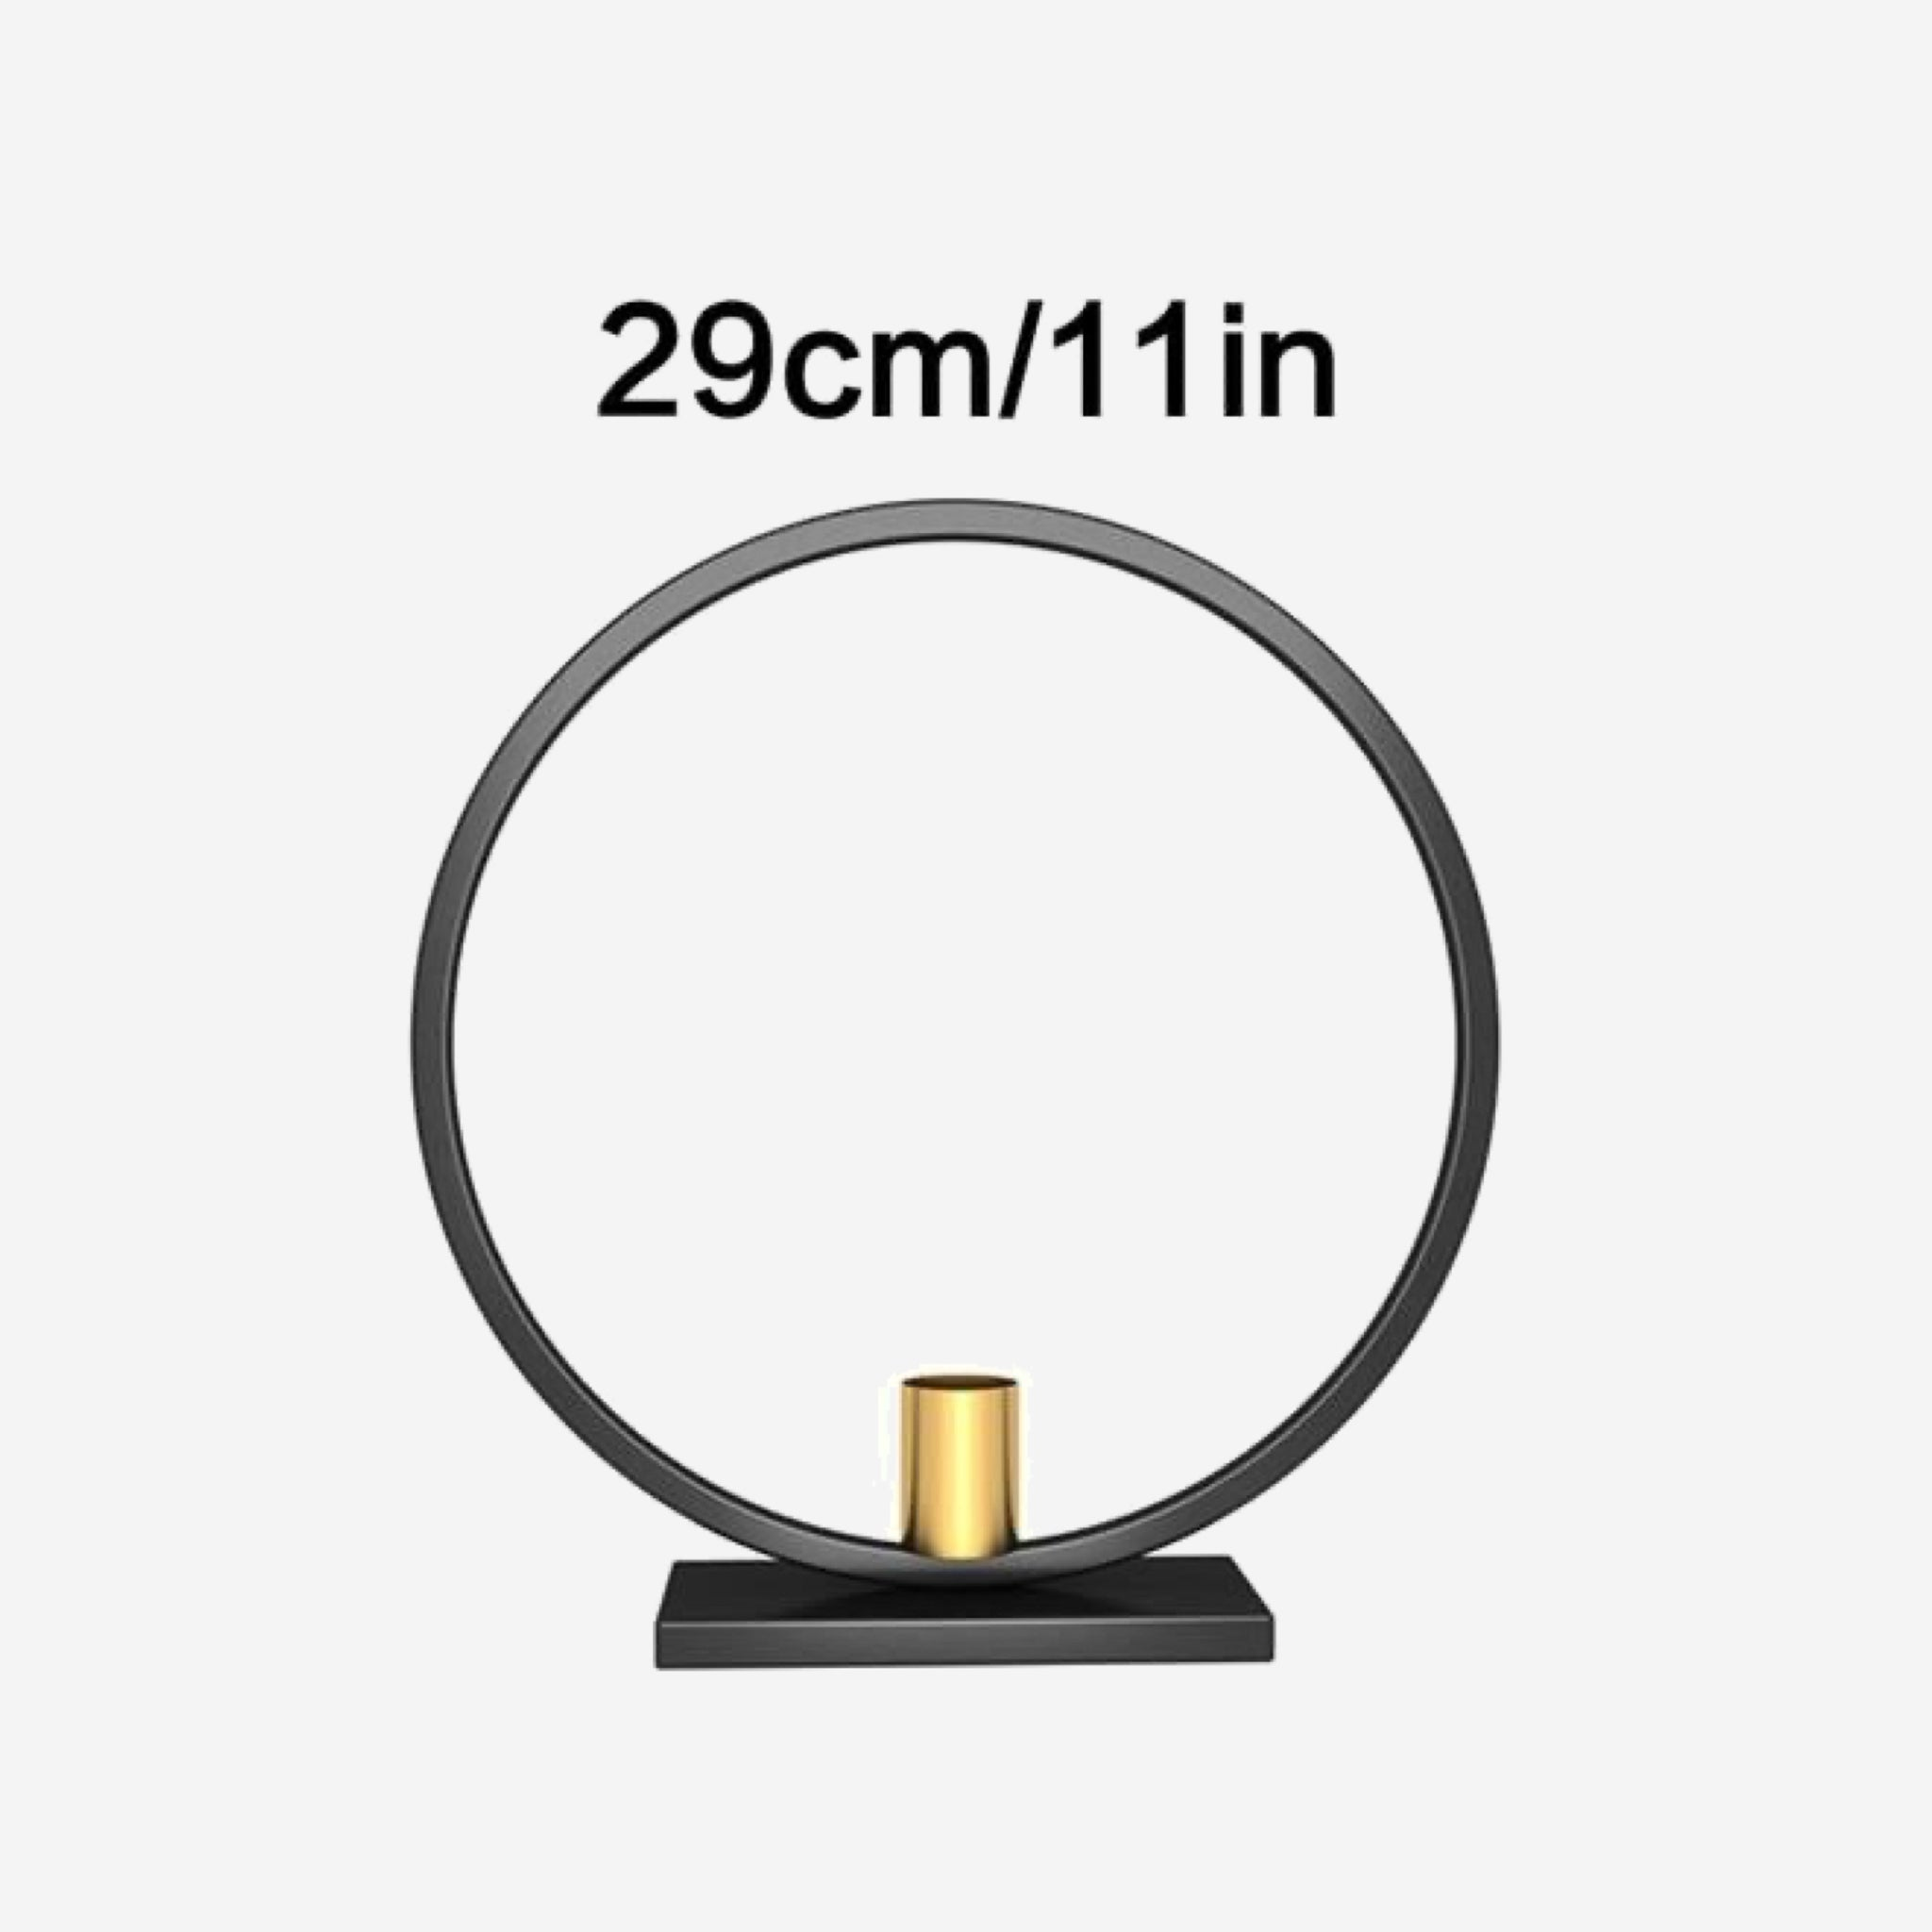 Round Iron Candle Holders Black Gold Candle Rack Metal Candlestick Holder Home Table Centerpiece Decoration 29cm Black Gold Trend